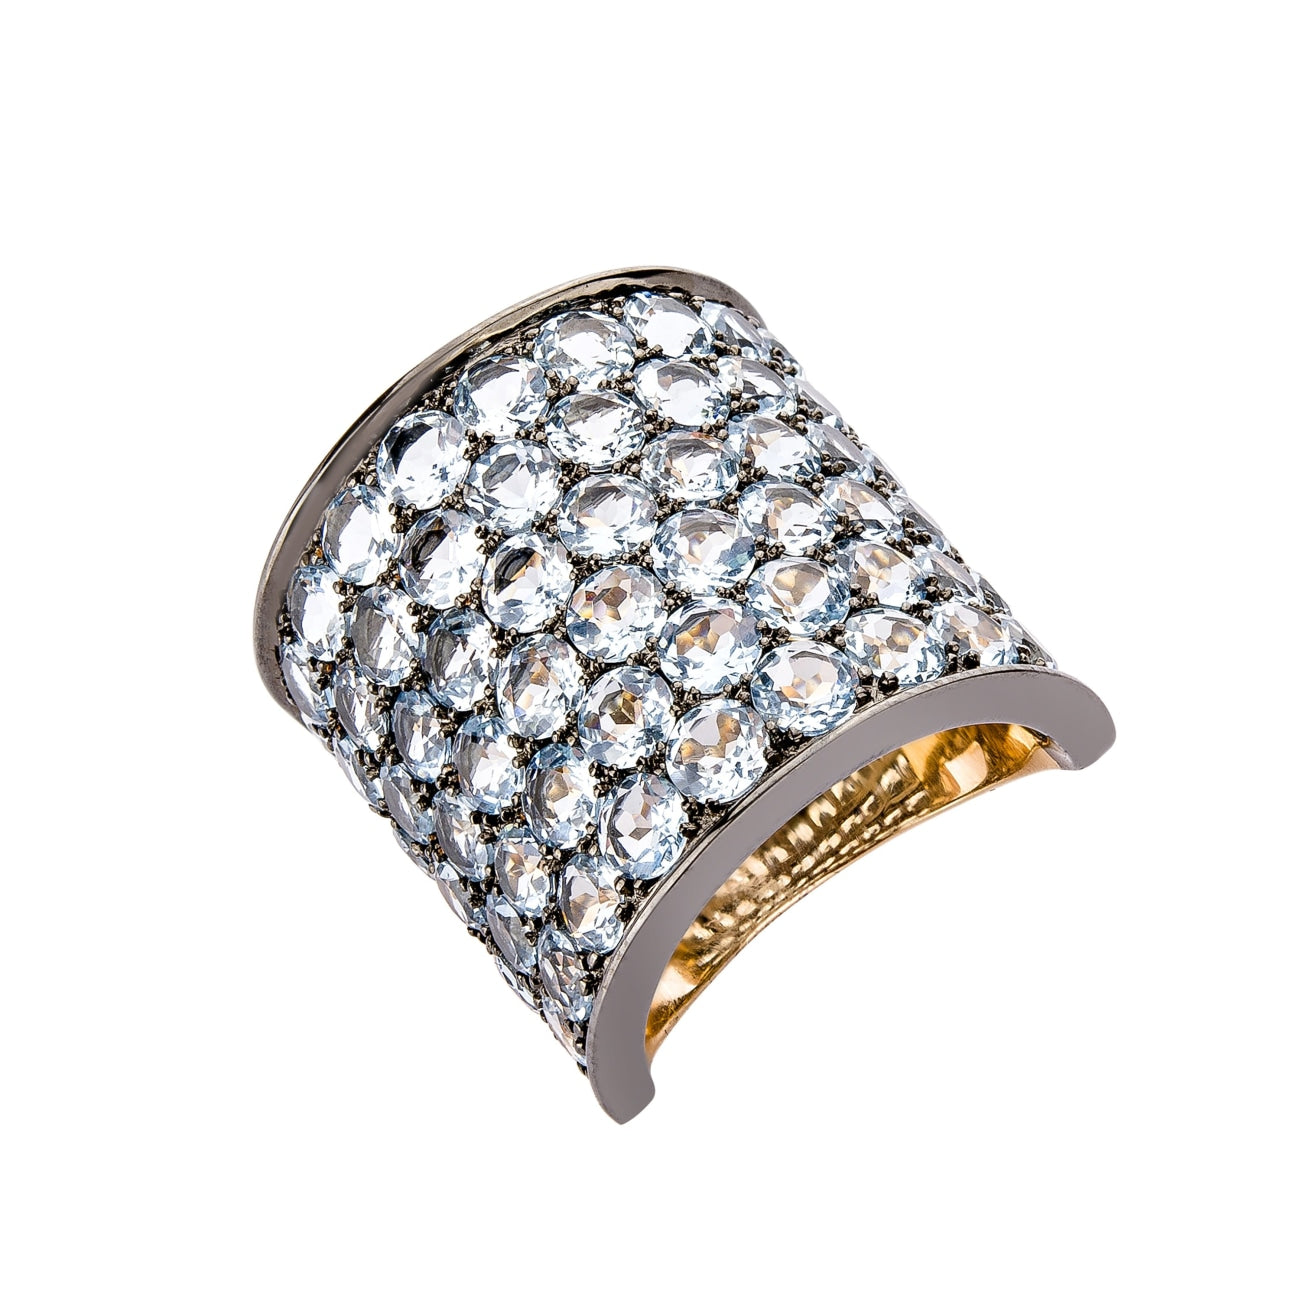 Etho Maria Jewelry - Blue topaz 6 rows ring | Manfredi Jewels